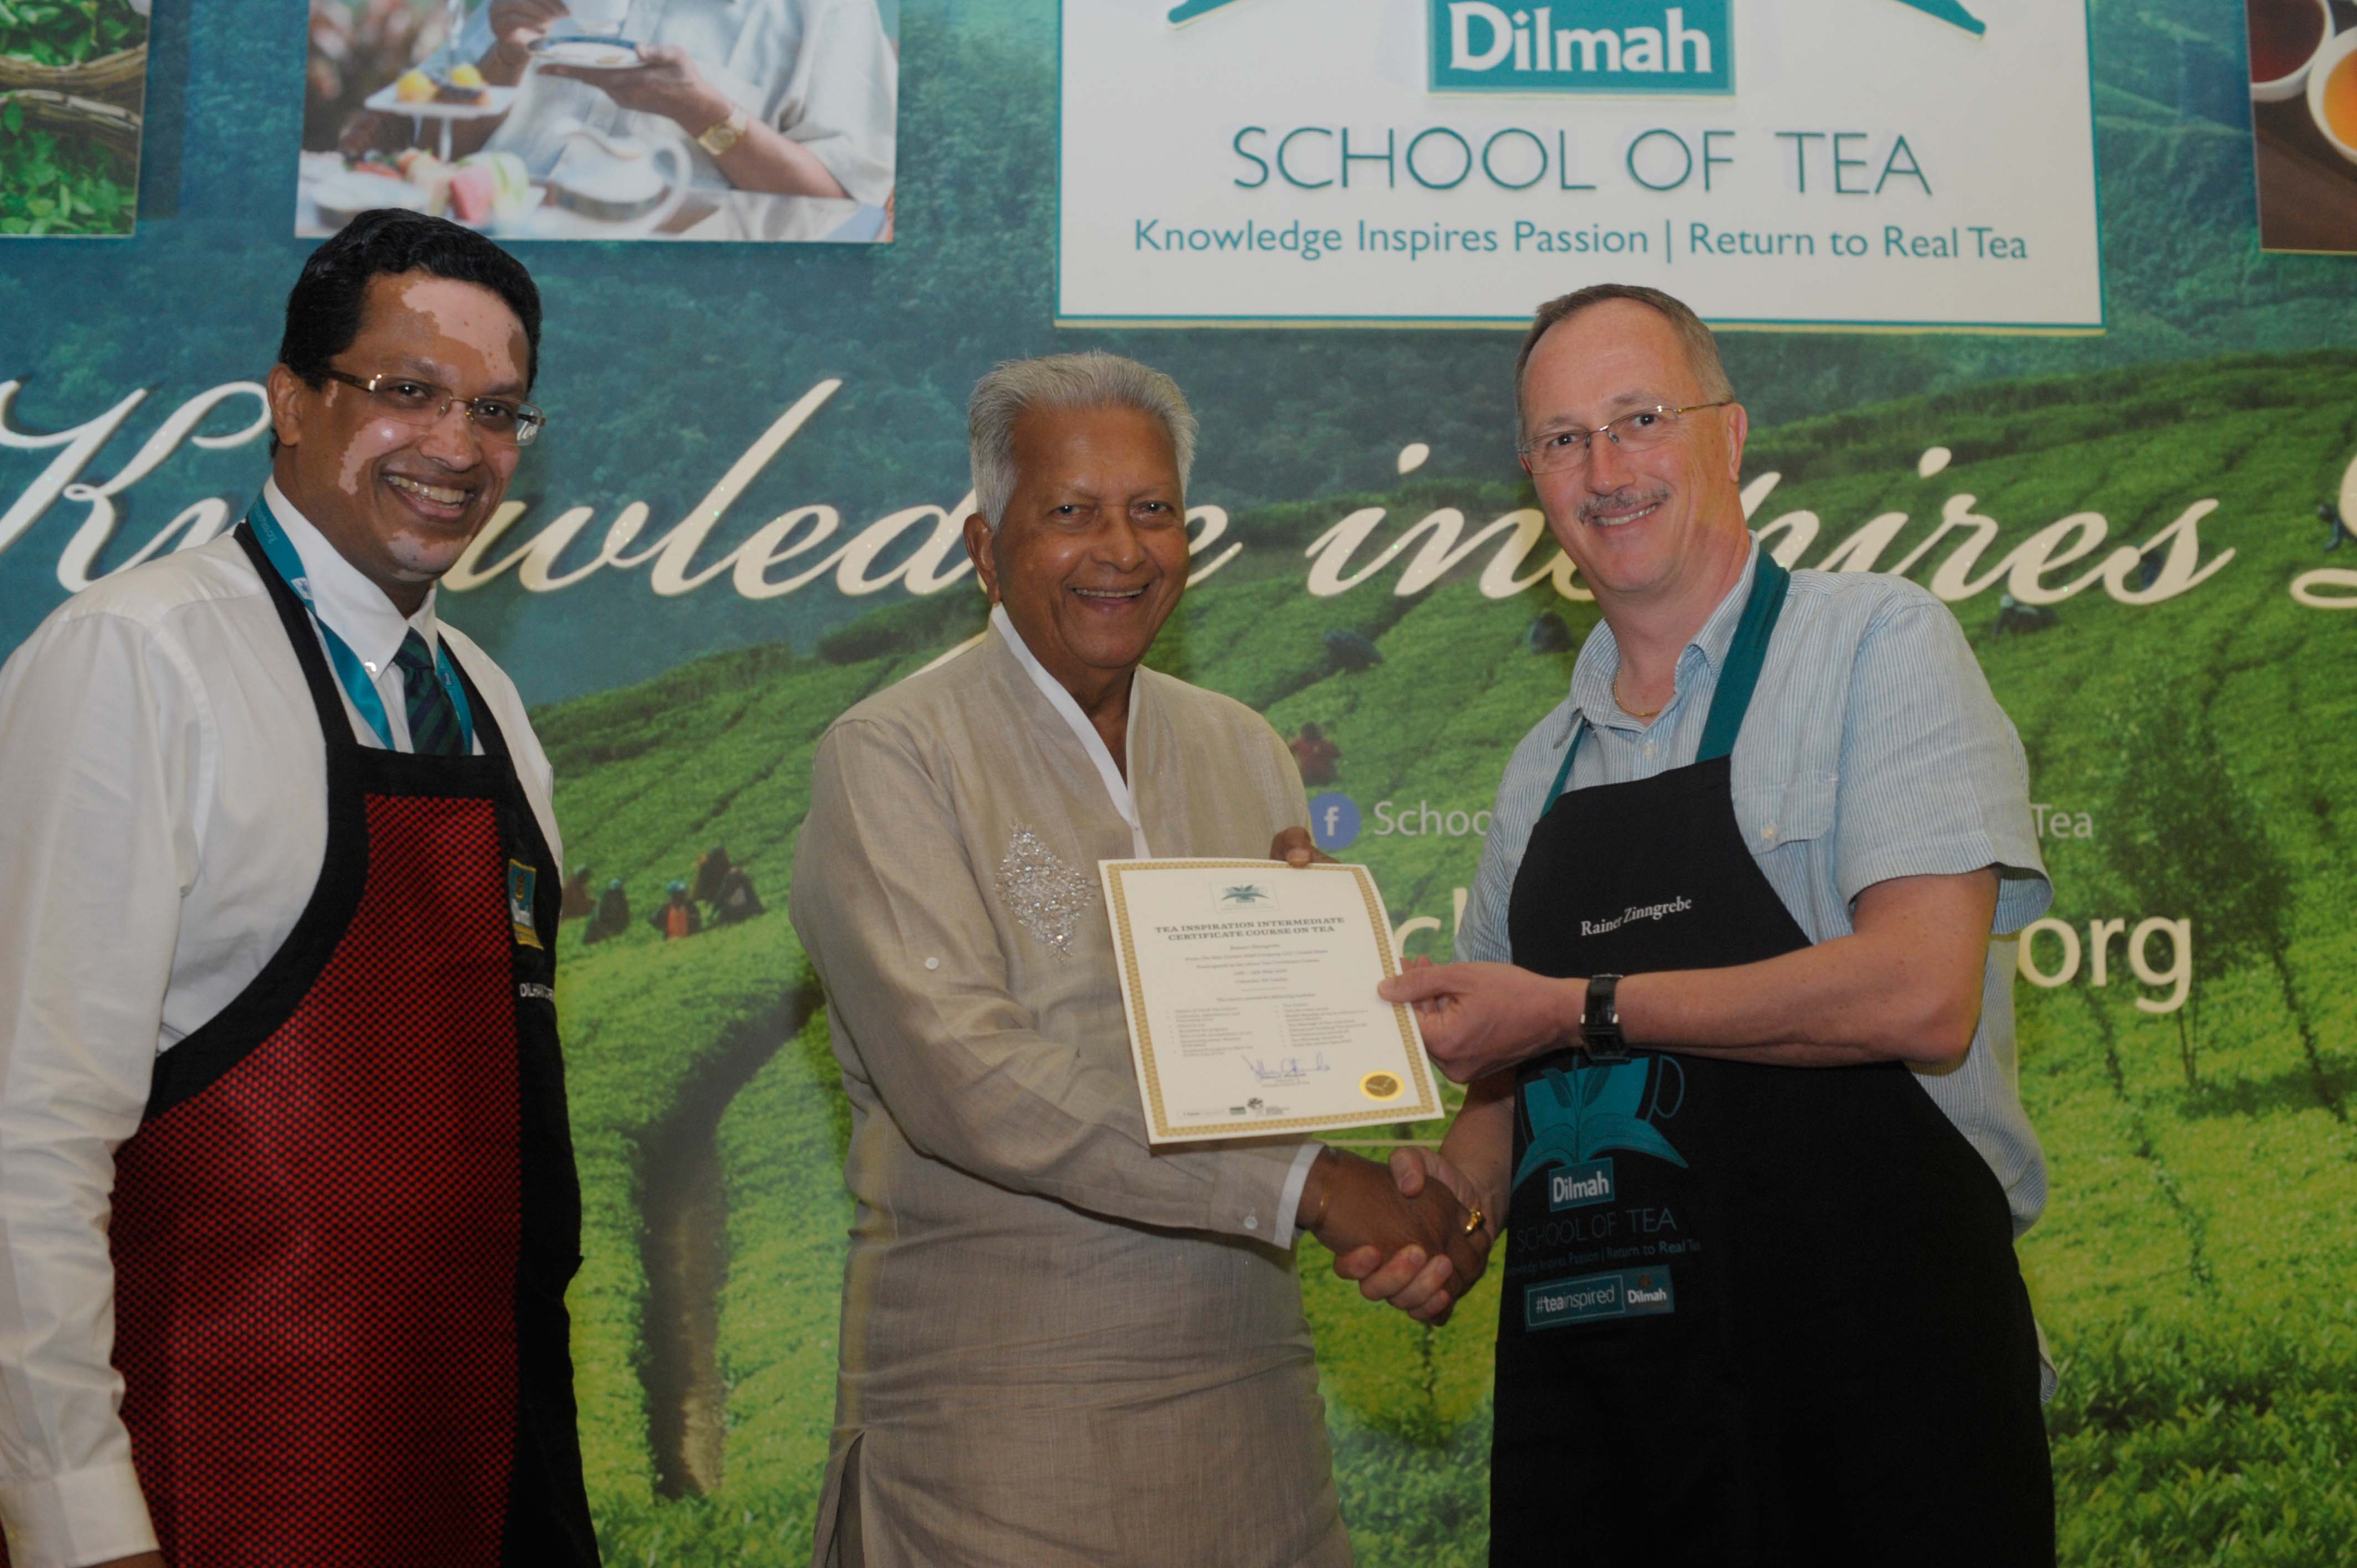 School of tea certificate presentation to Rainer Zinngrebe